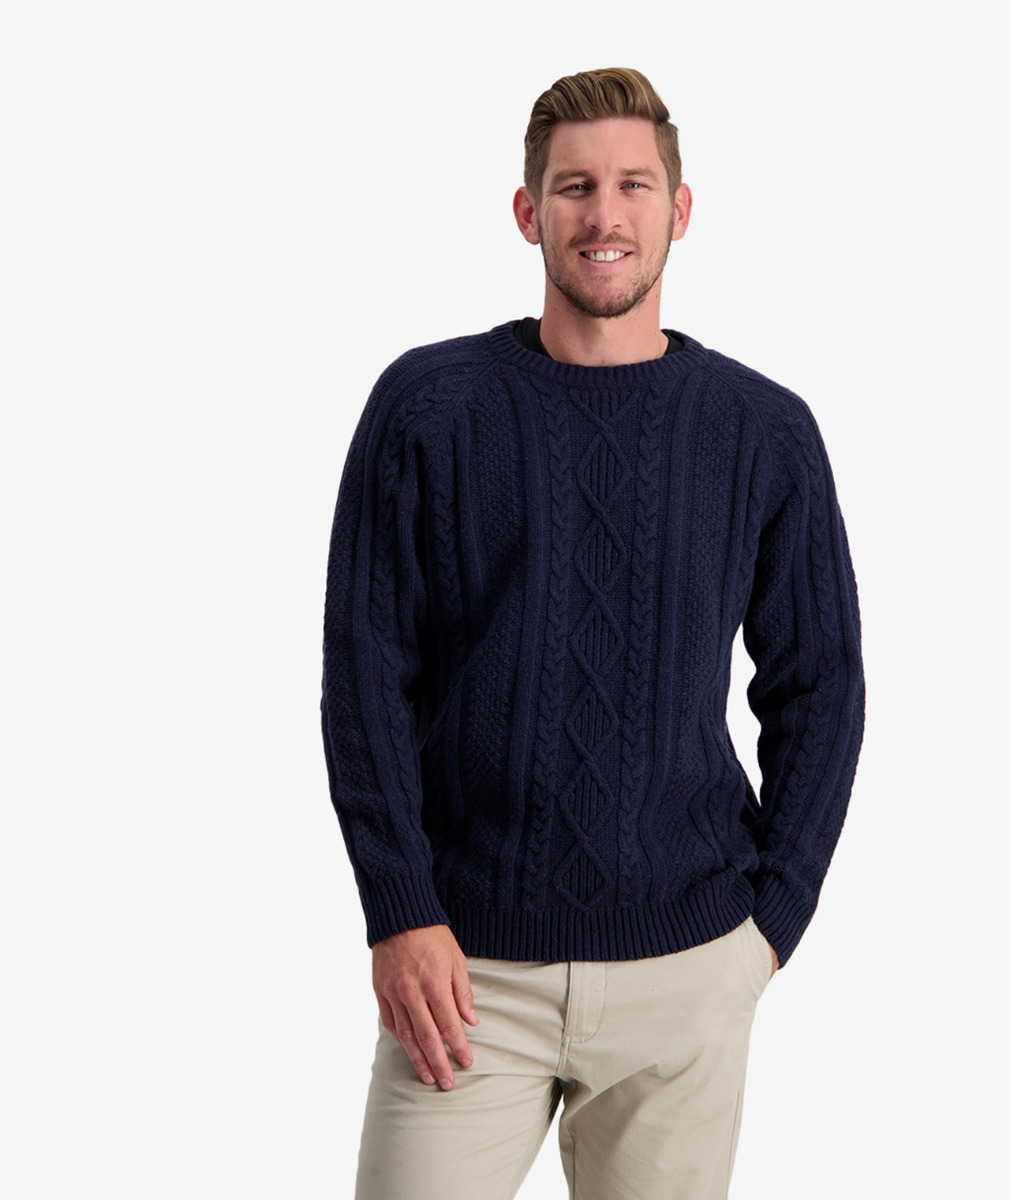 Swanndri Men's Back Beach Cable Crew Jumper in Navy